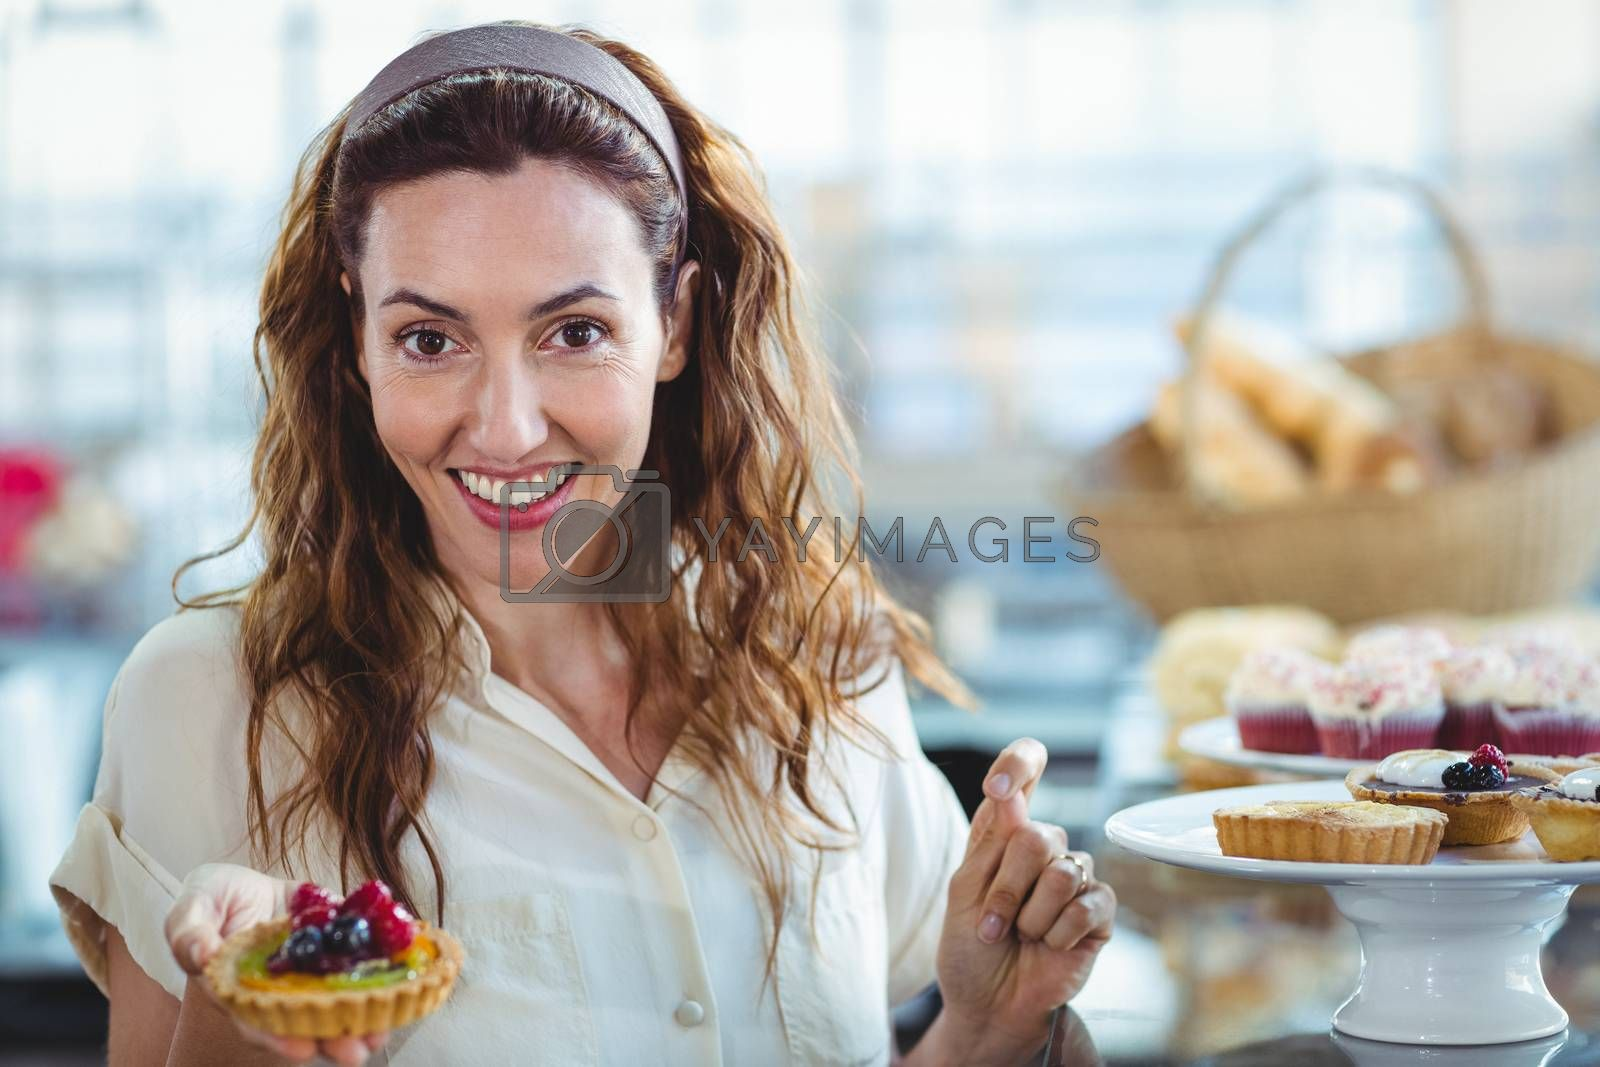 Royalty free image of Astonished pretty woman looking at camera by Wavebreakmedia